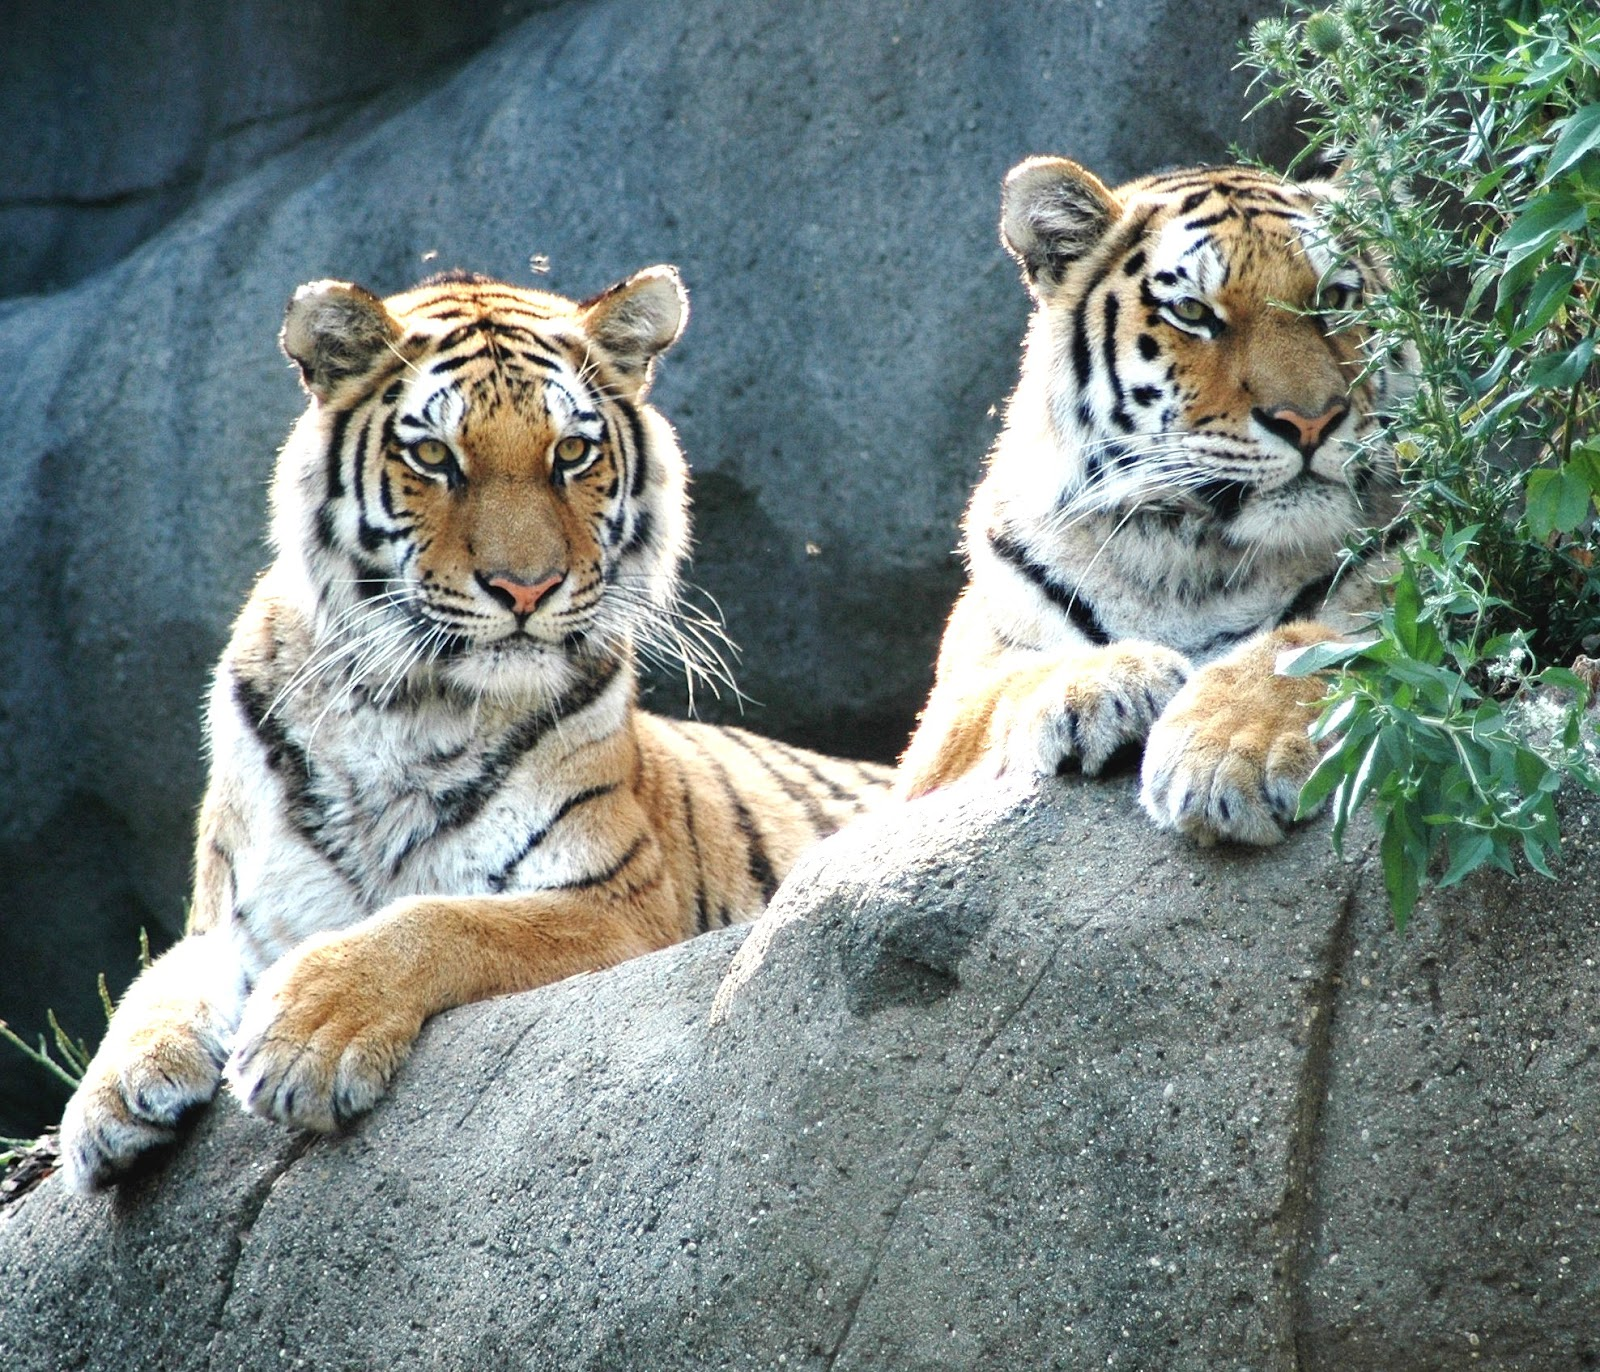 Wildlife and Nature: Wild Tigers Could Disappear by 2022 ...